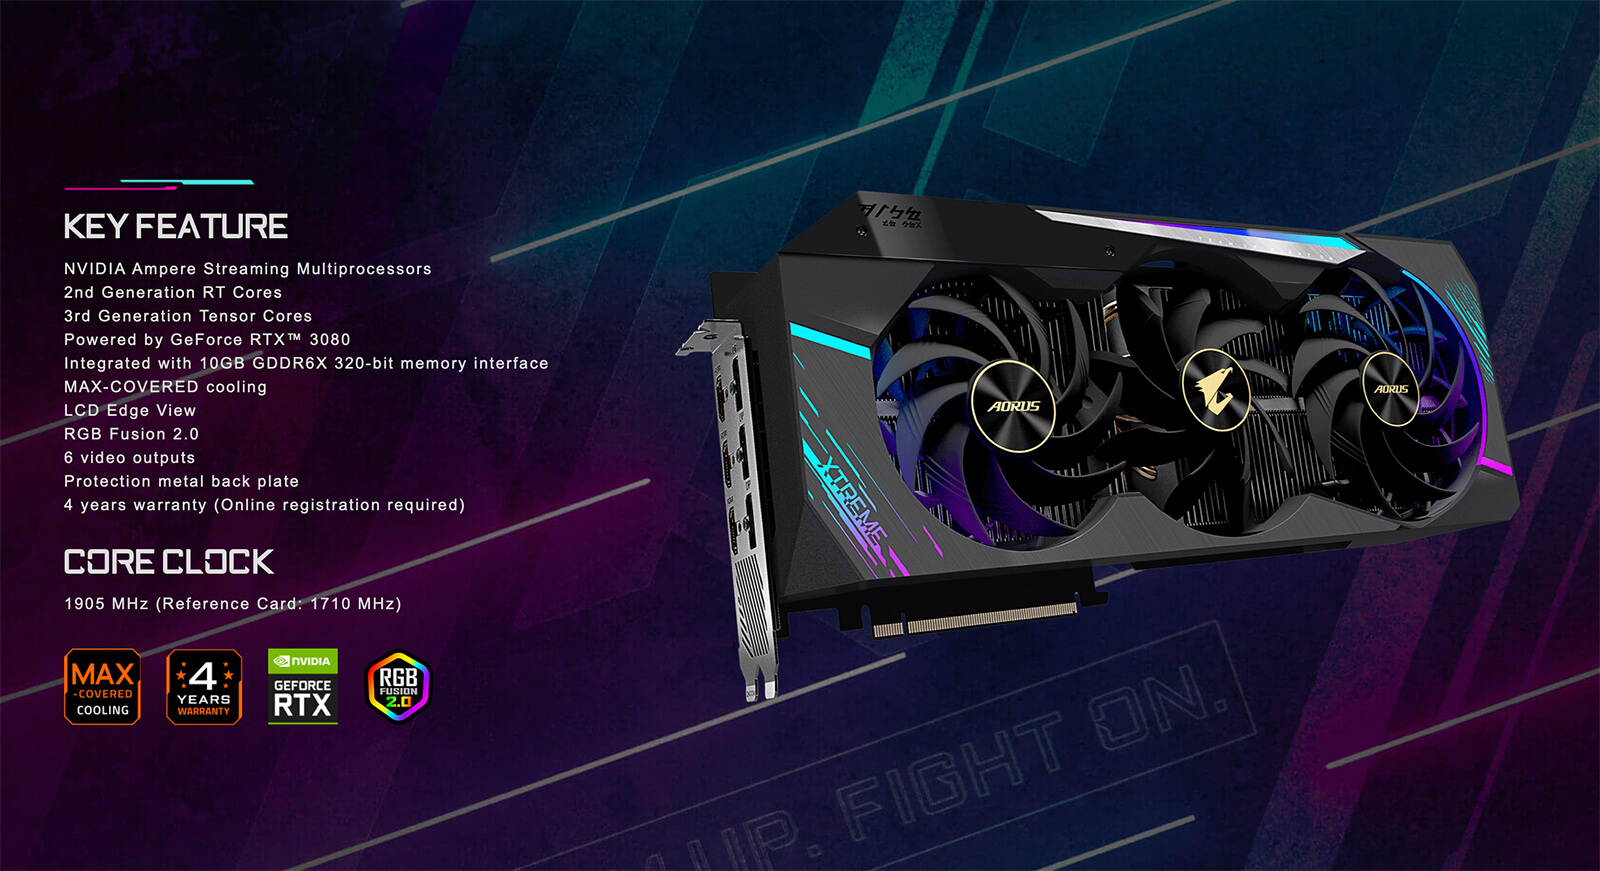 Aorus Geforce® Rtx 3080 Extreme 10g Featured